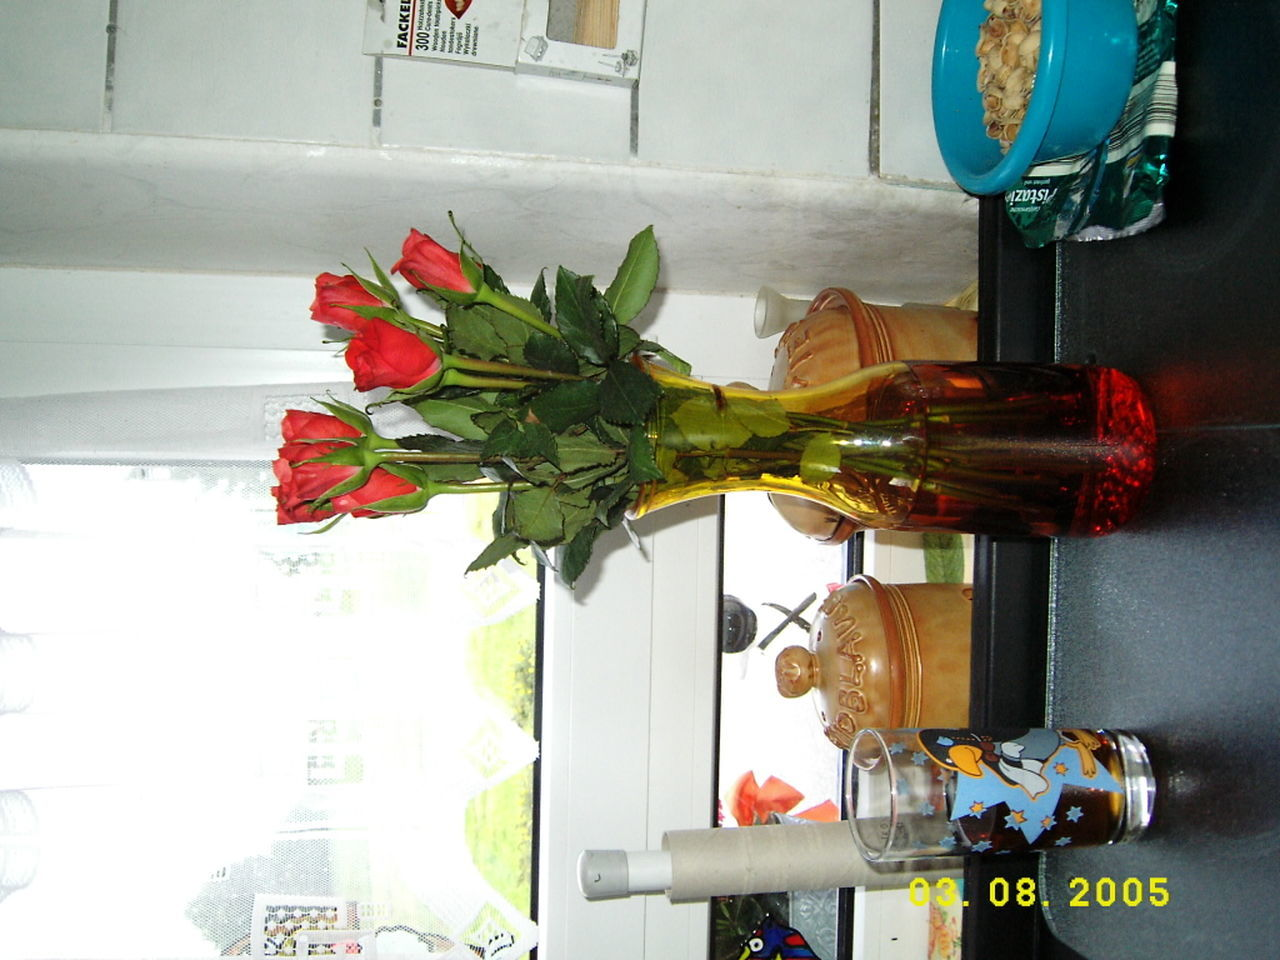 flower, freshness, indoors, vase, no people, food and drink, food, day, bouquet, drink, close-up